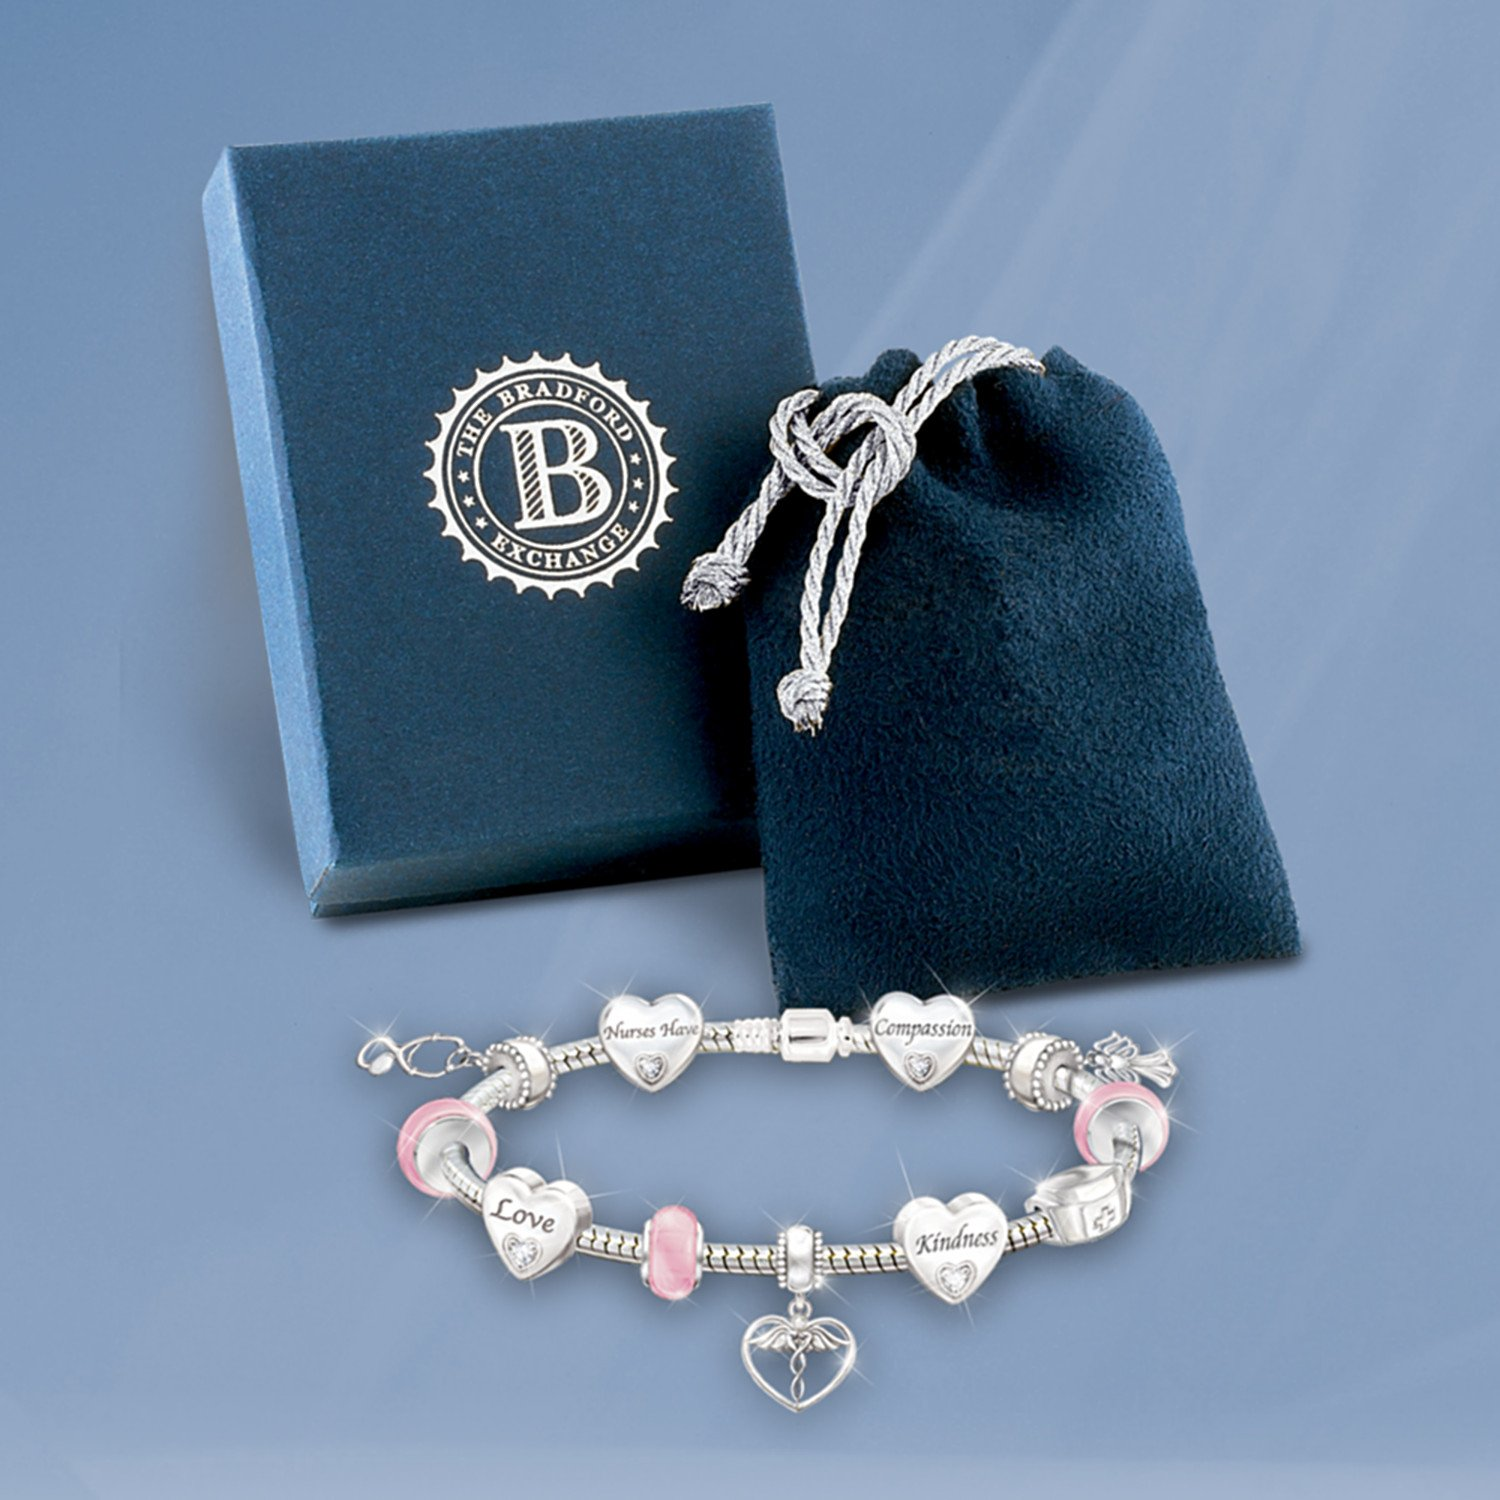 A Nurse's Heart Charm Bracelet by The Bradford Exchange by Bradford Exchange (Image #5)